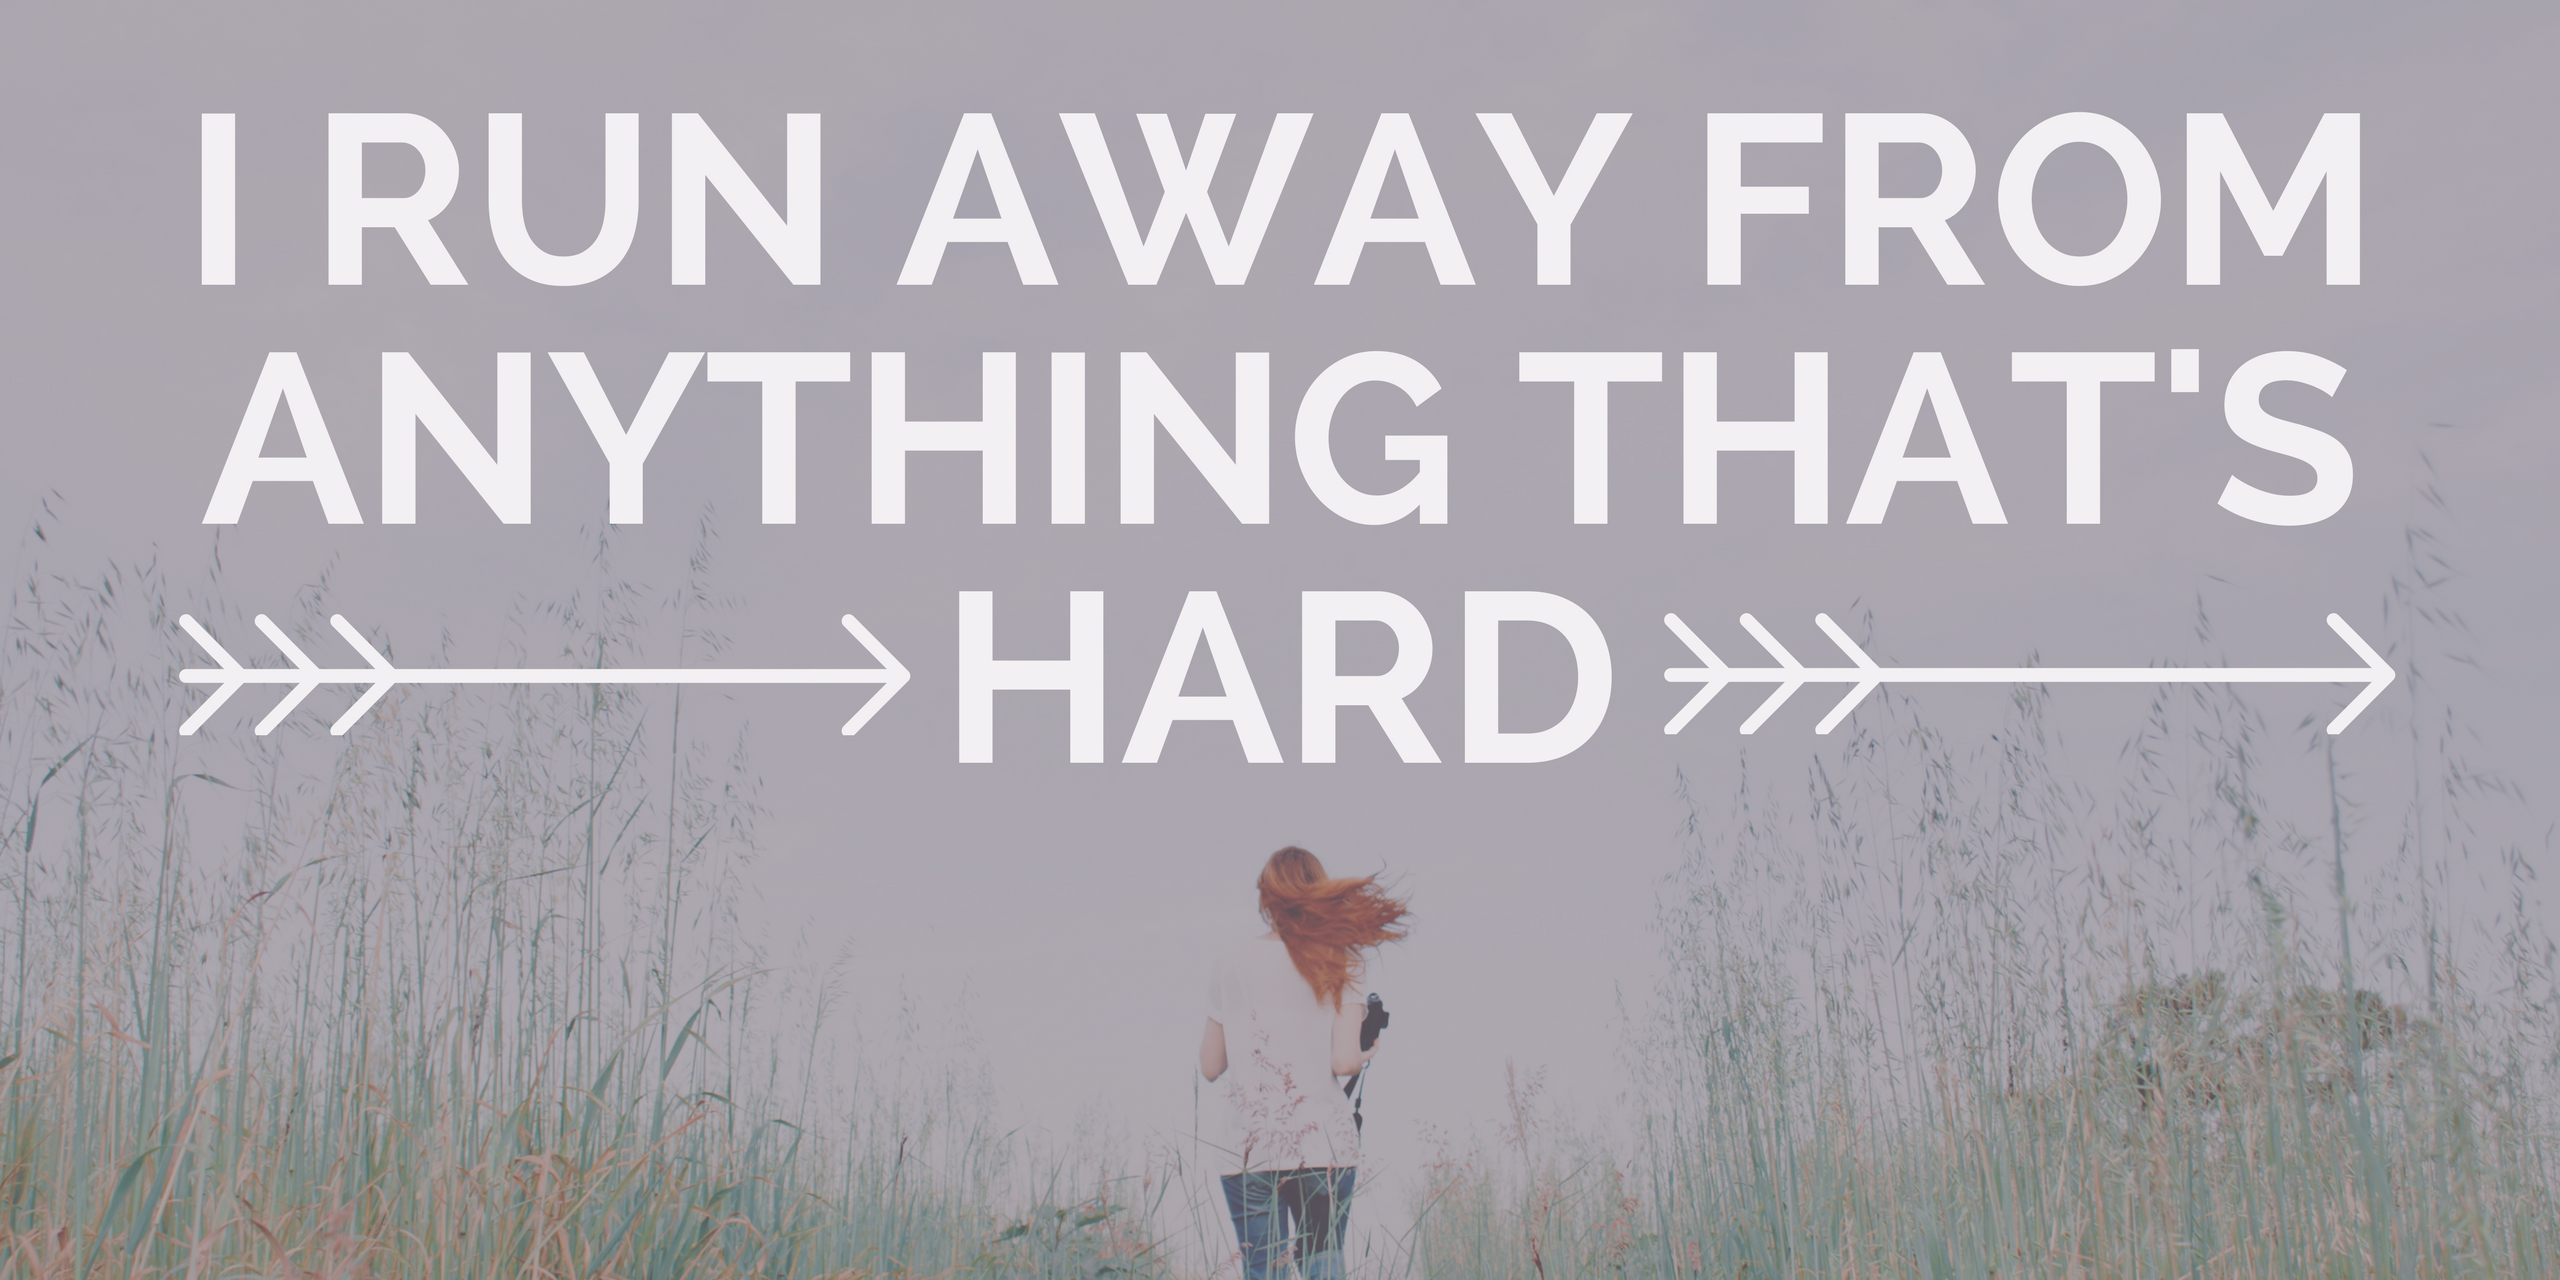 I Run Away From Anything That's Hard